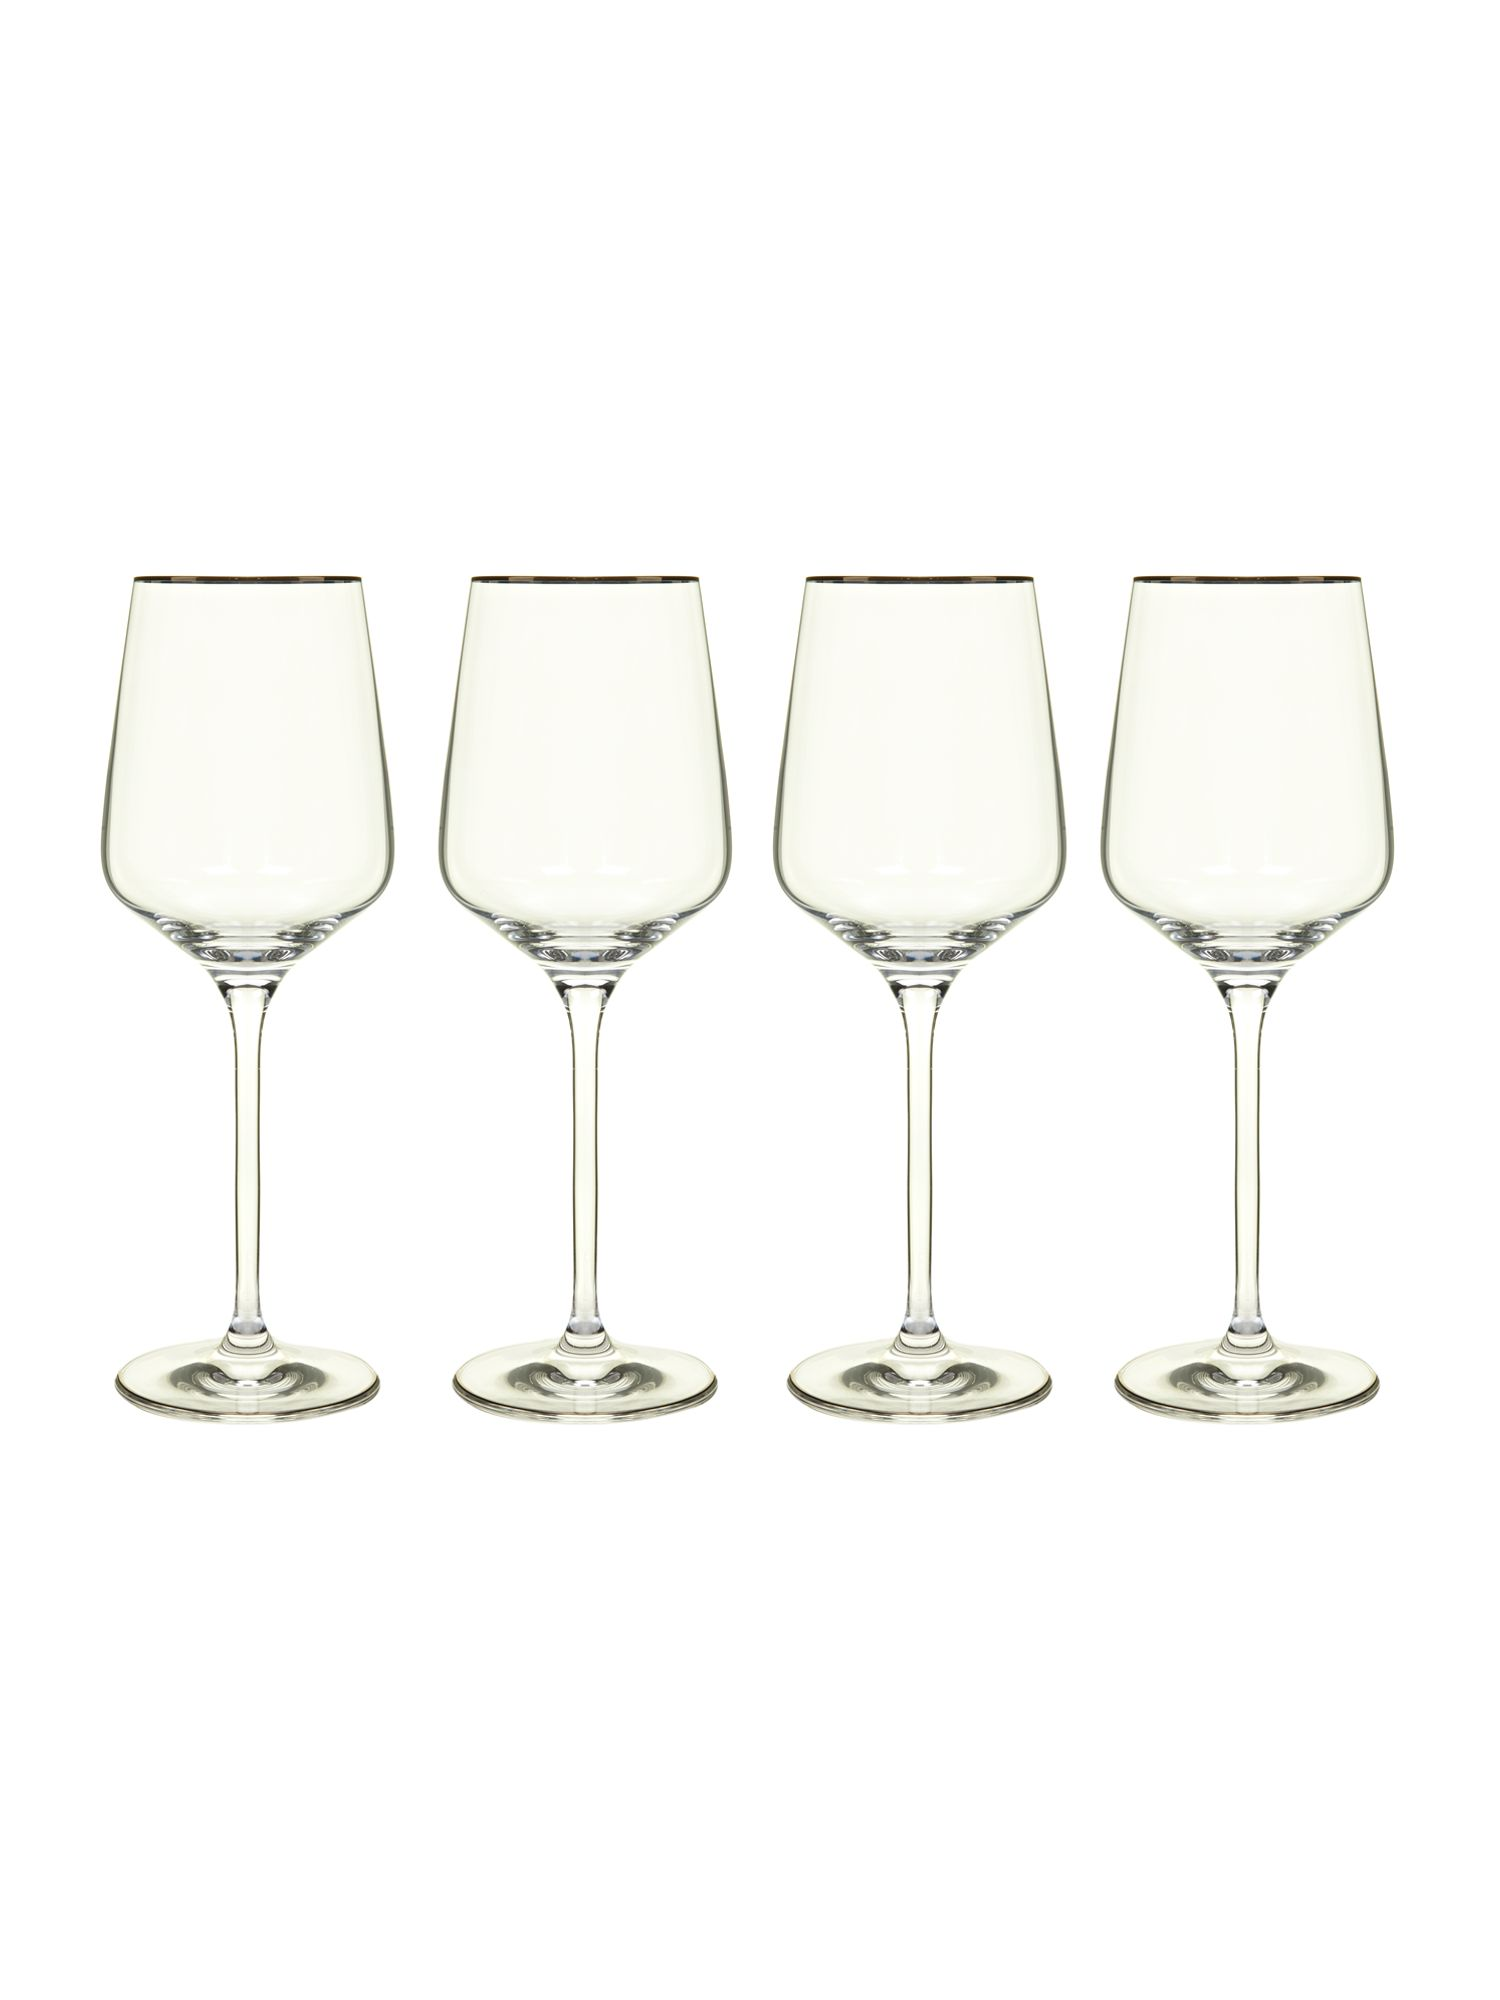 Platinum band red wine glasses box of 4